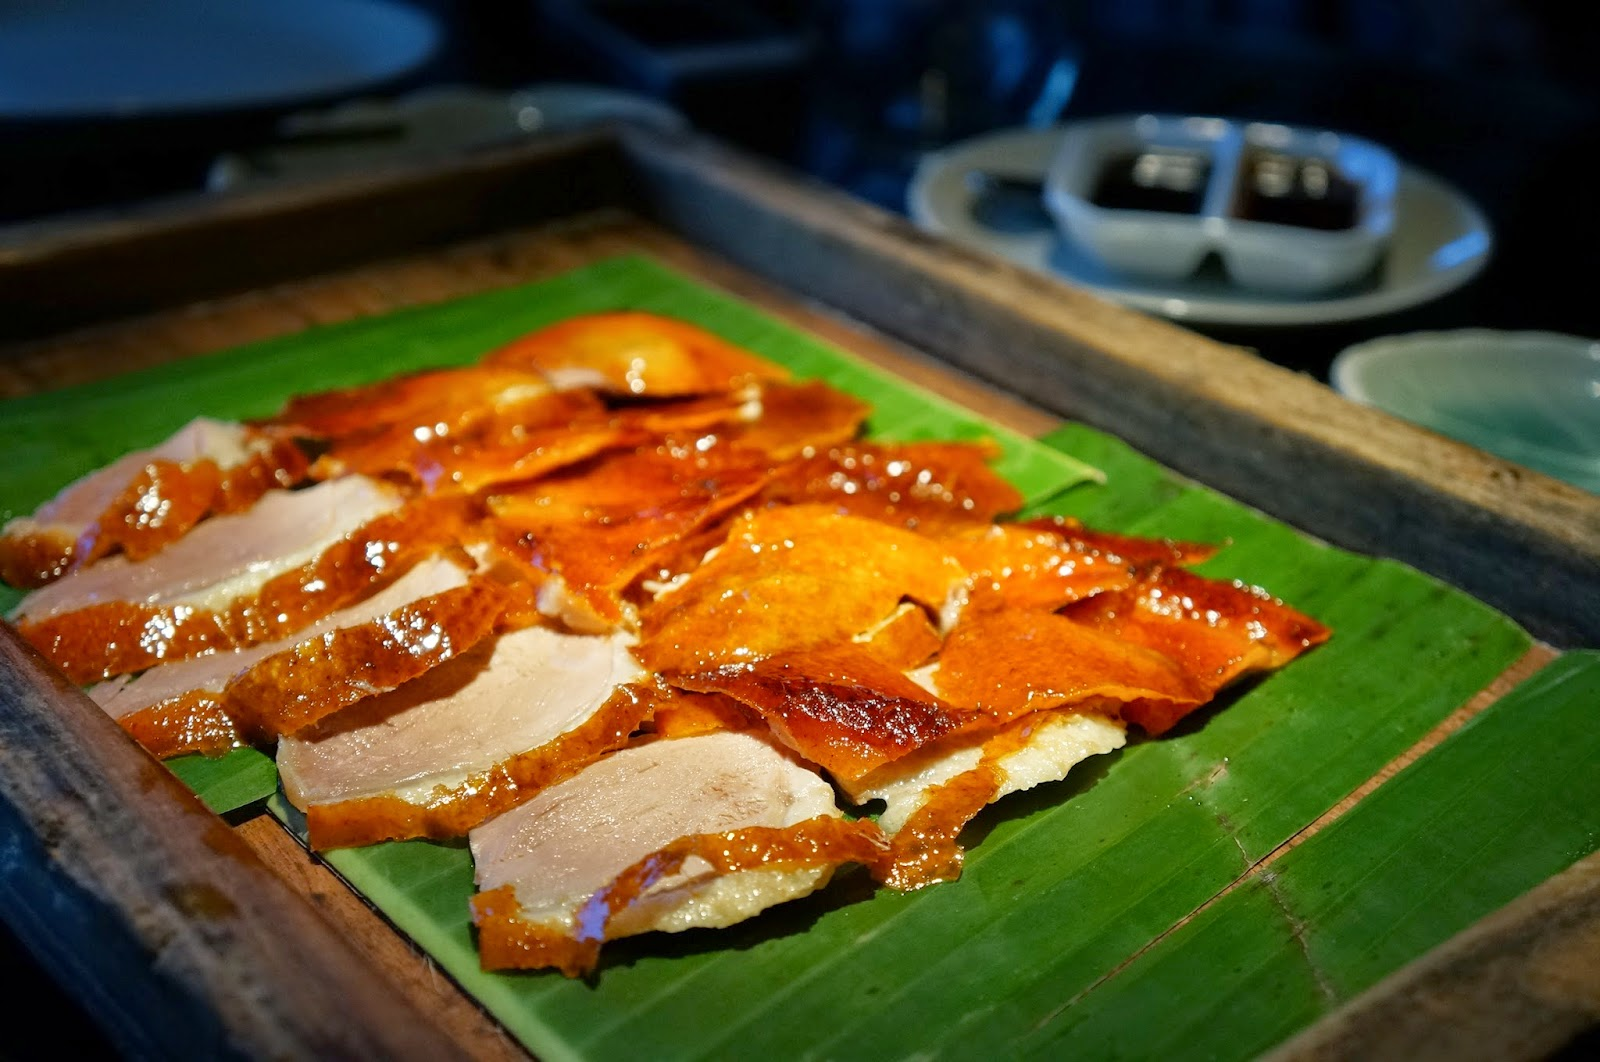 chef skilfully carved the thin crispy skin from the whole roasted duck at the table with just a modest layer of duck fat attached to the skin to give it aqua shard subdued lighting